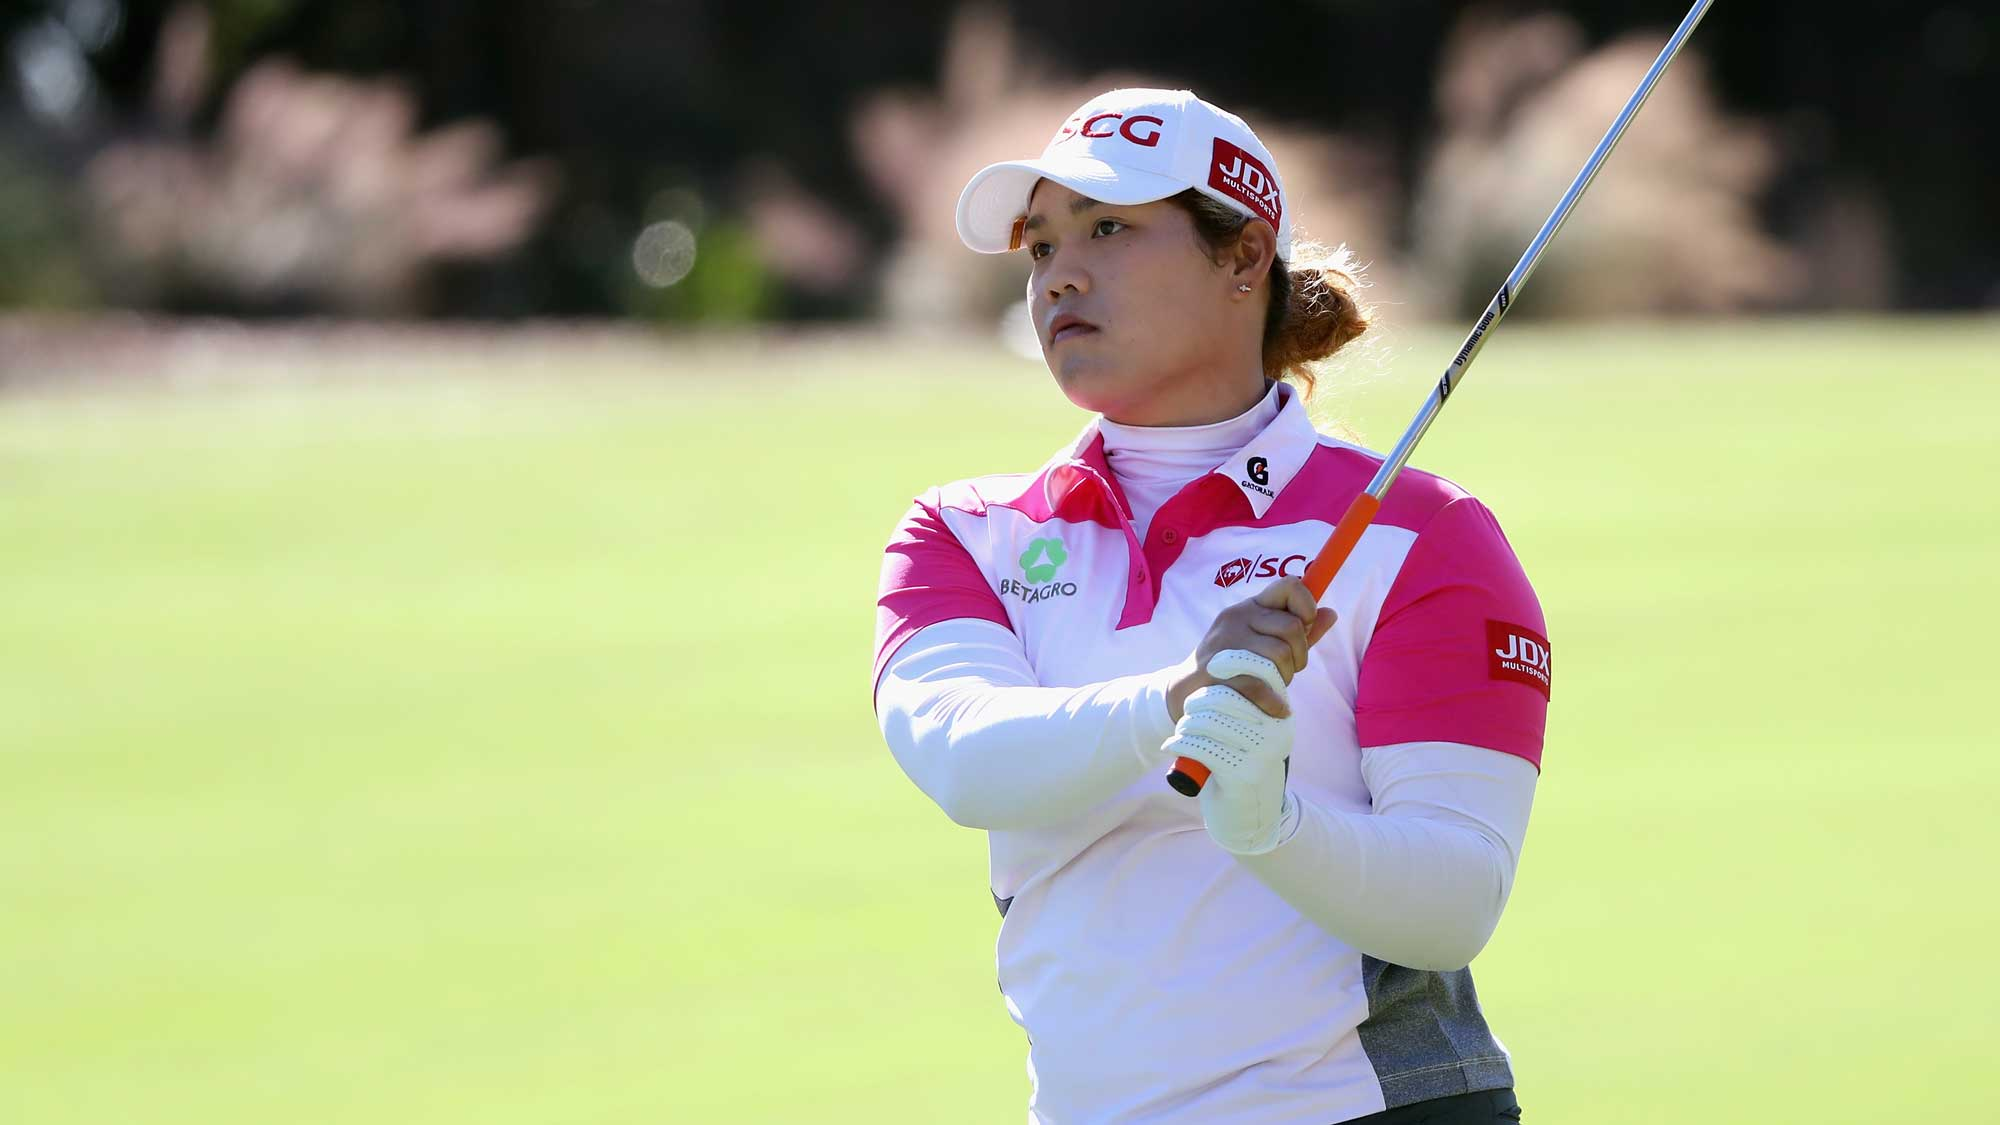 Ariya Jutanugarn of Thailand plays a shot on the second hole during round three of the CME Group Tour Championship